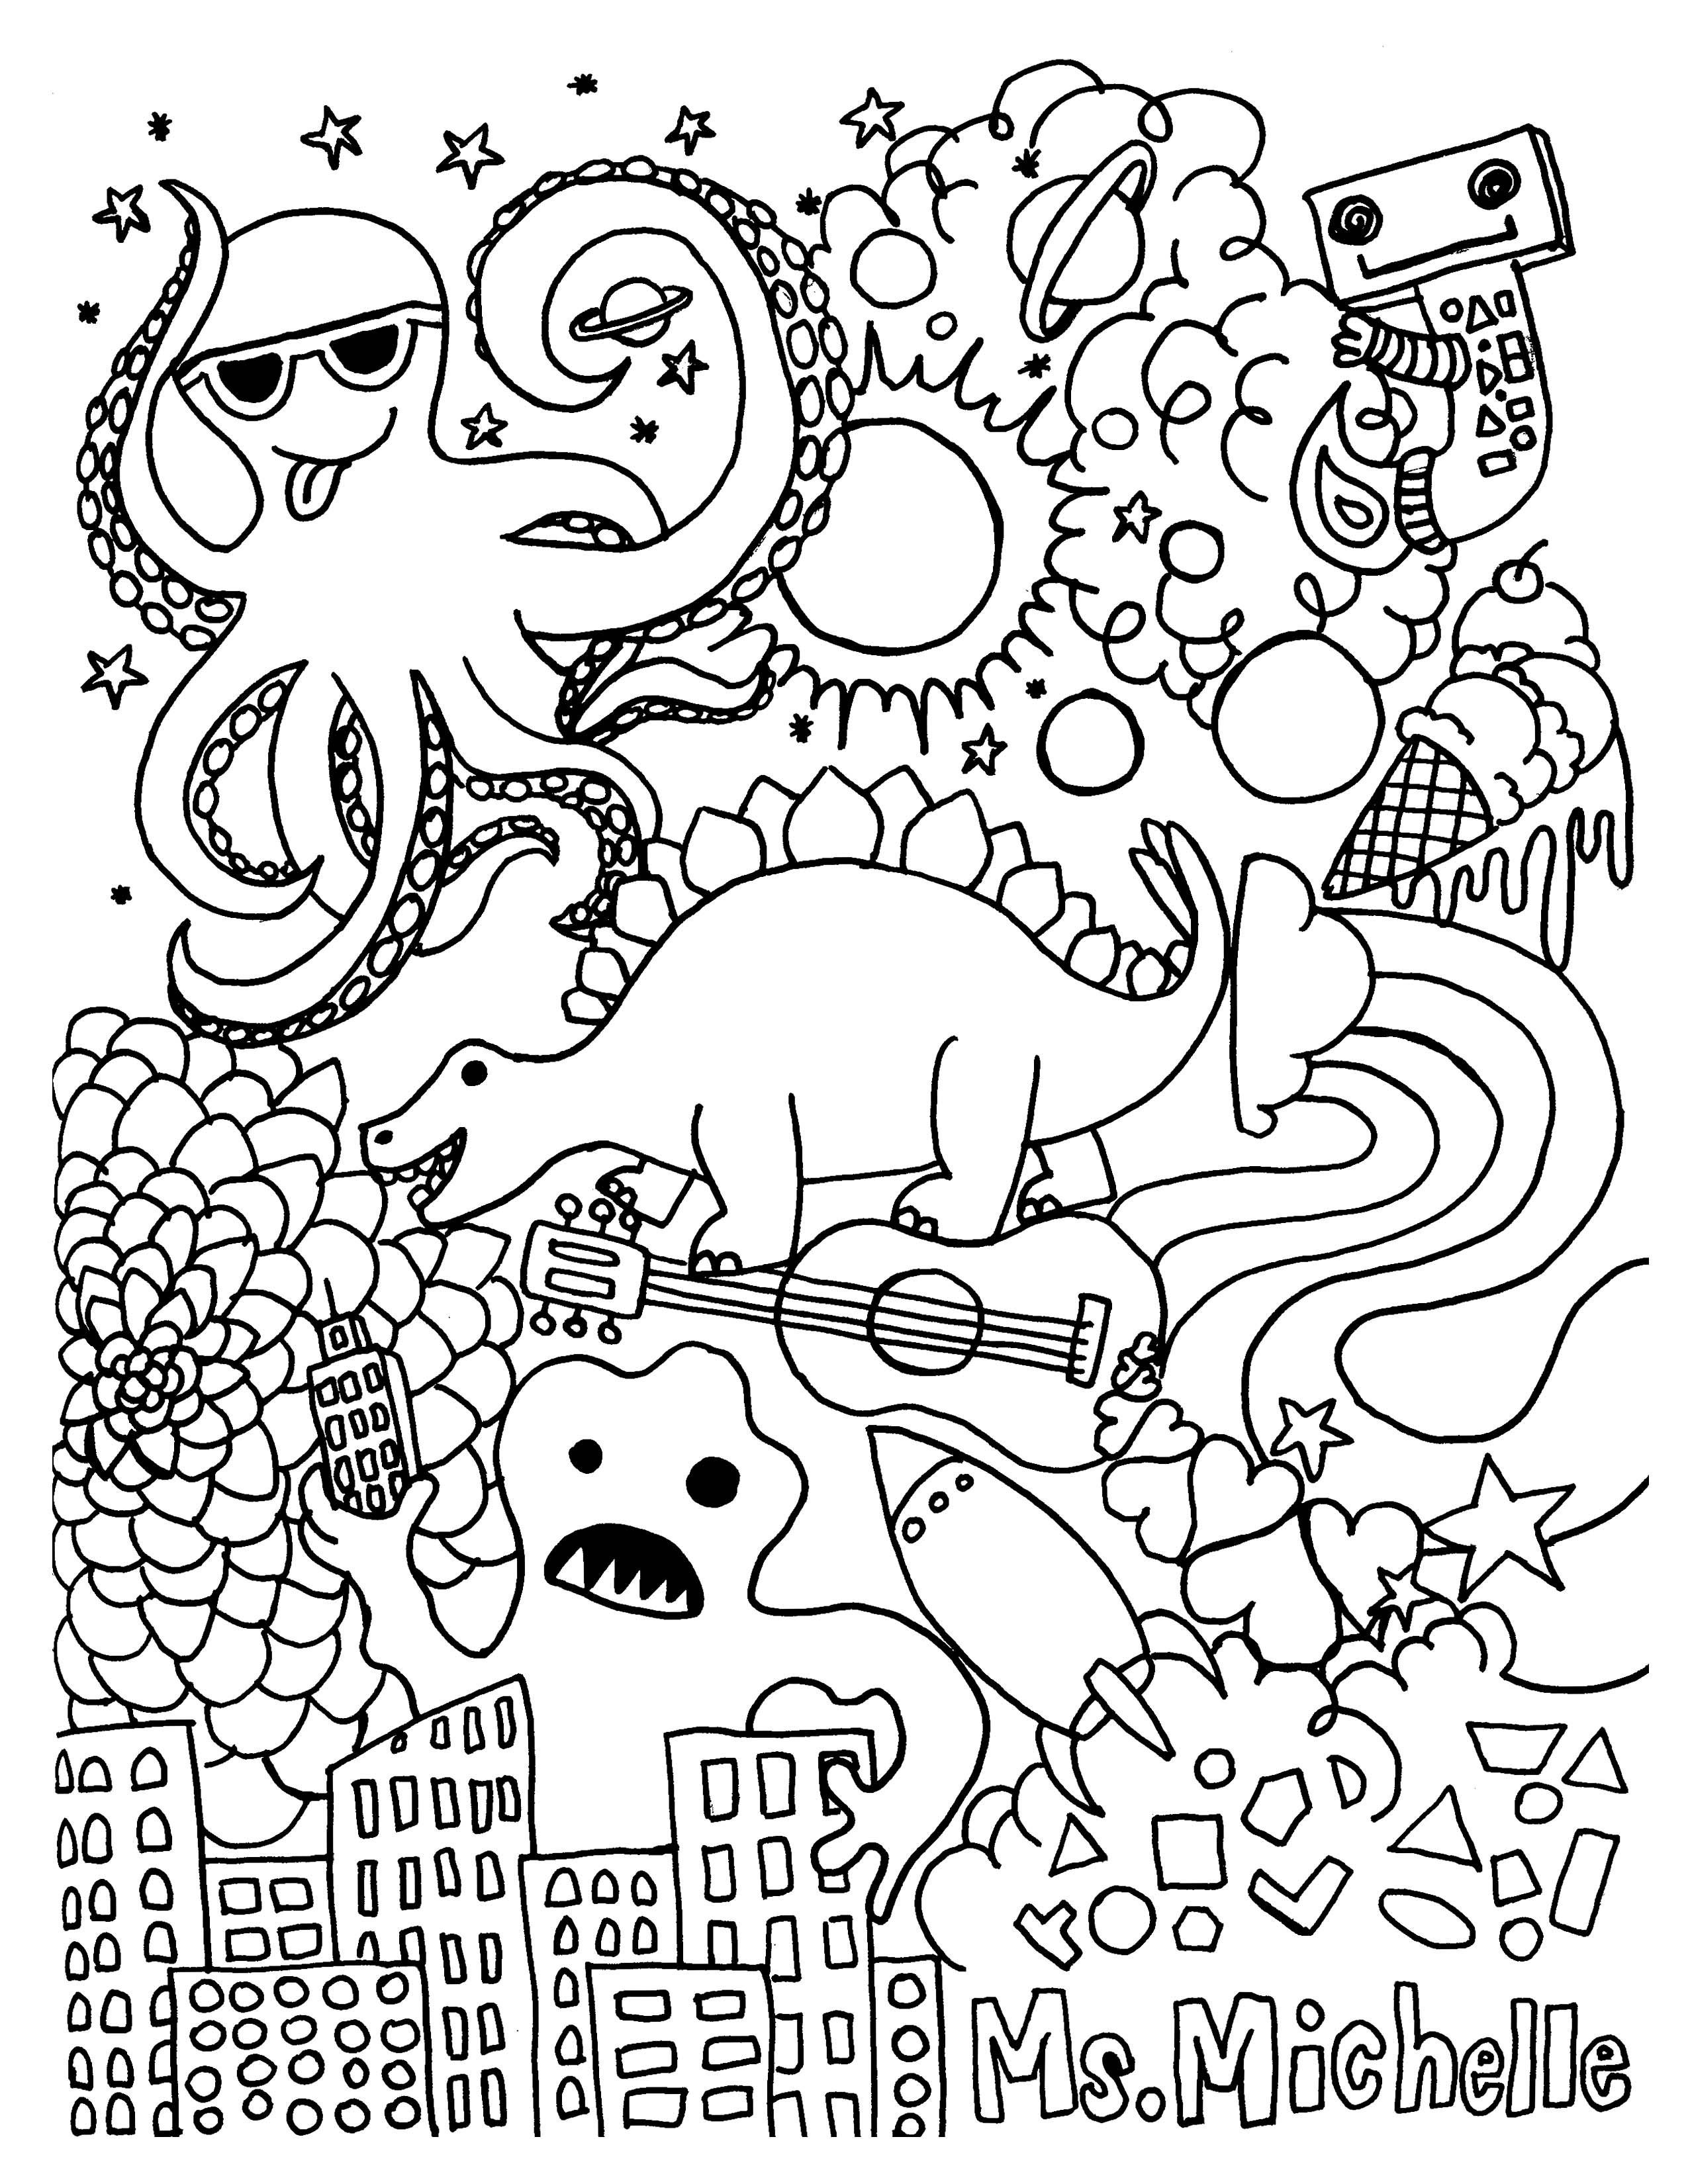 2550x3300 Chicago Bulls Coloring Pages New Chicago Bulls Coloring Pages